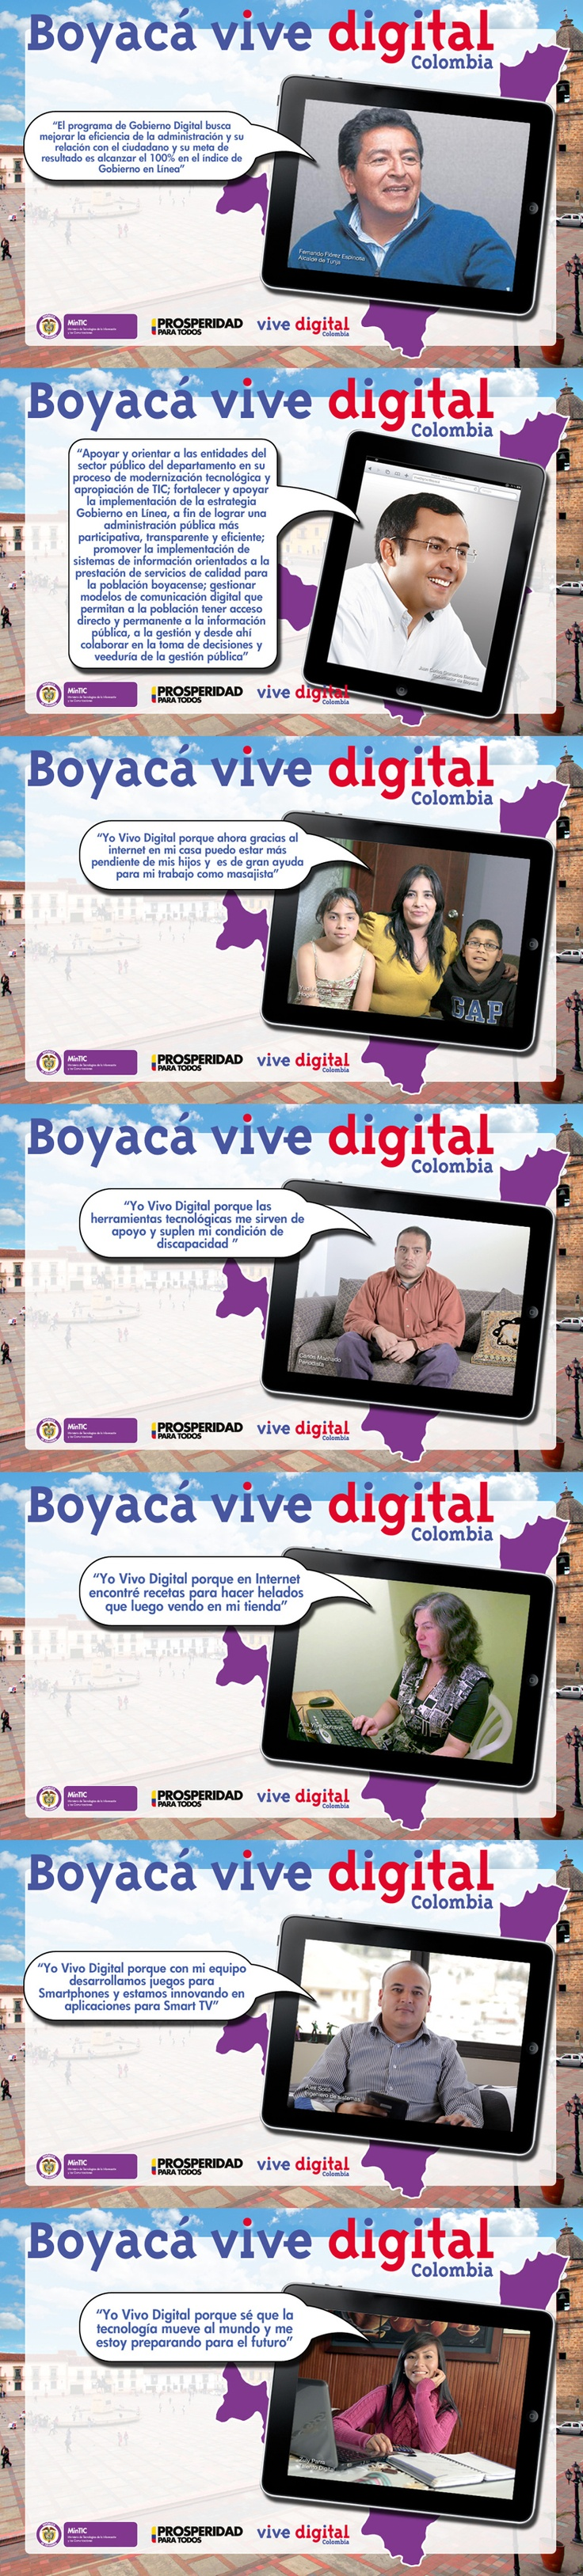 Boyacá Vive Digital